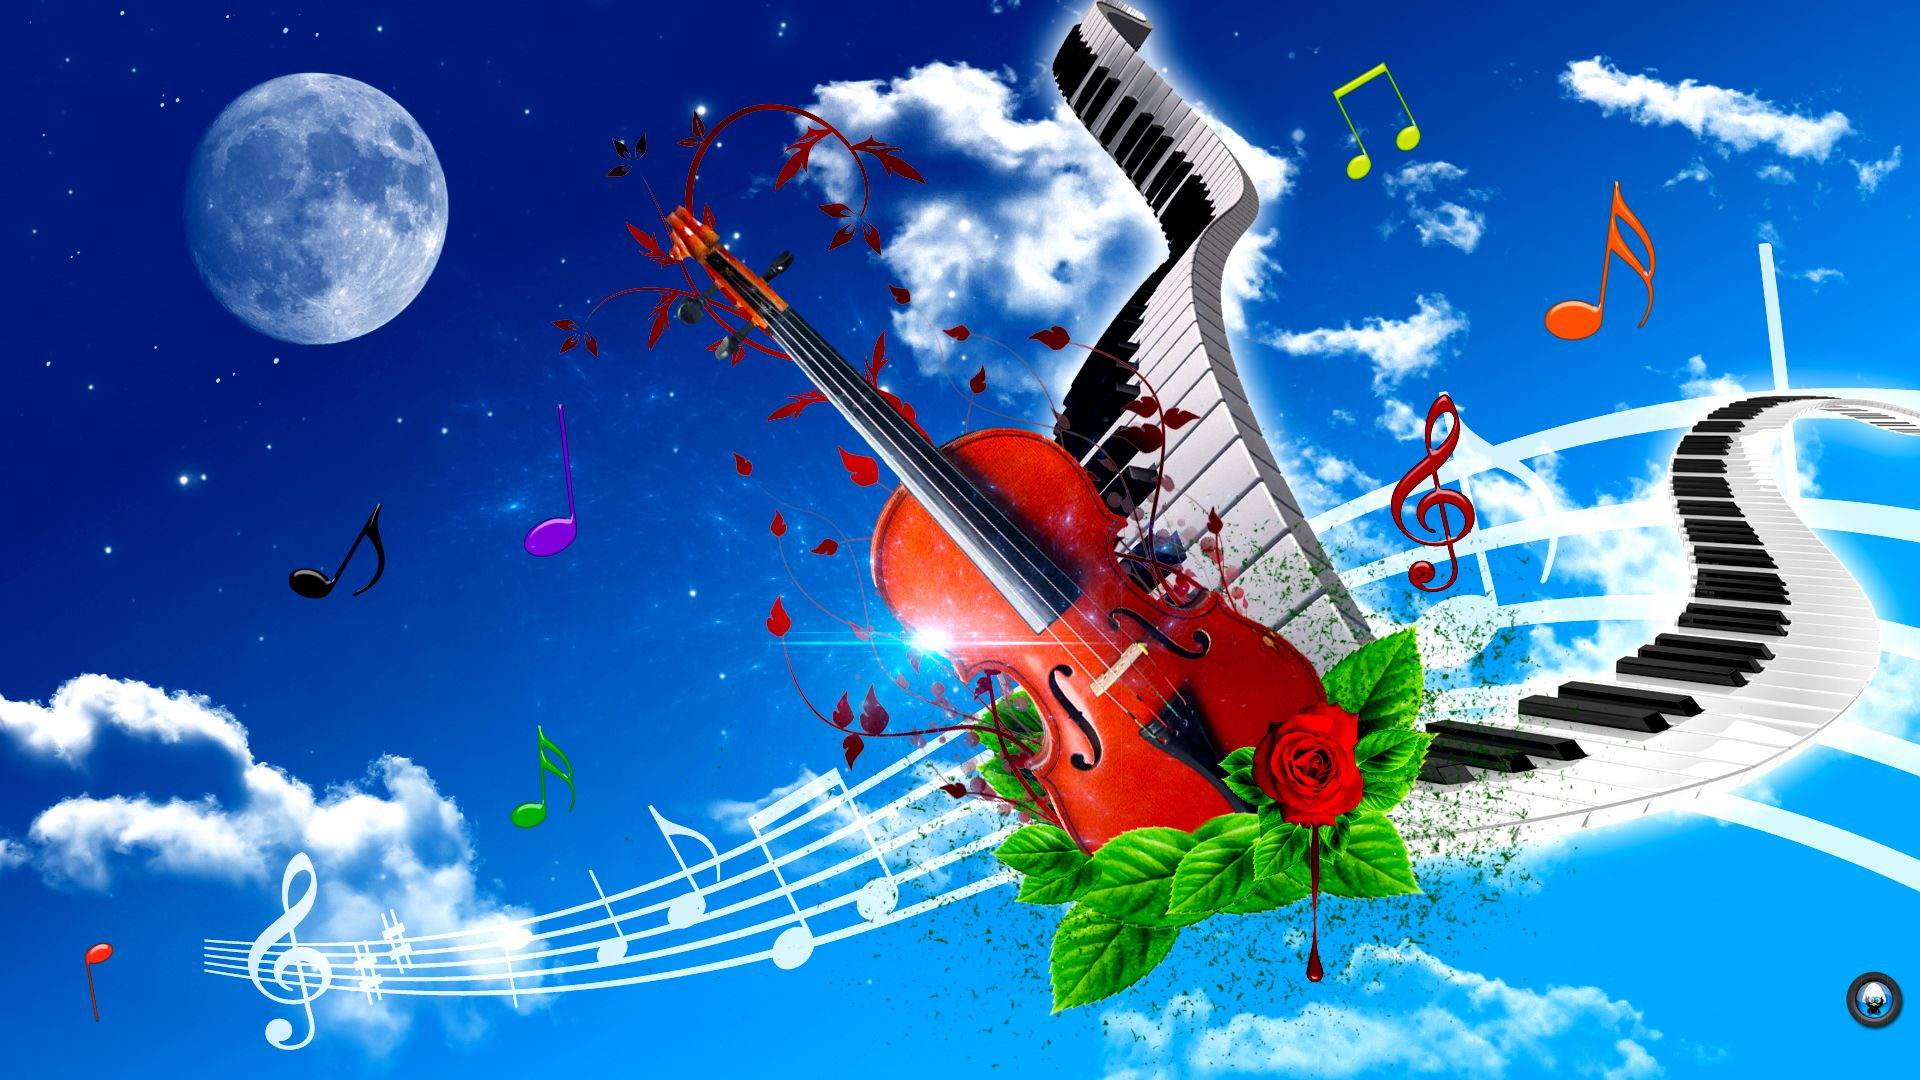 Best Wallpaper Music Tone - fa6c82aaaf29a52b92da6545d61a1347  Picture_15814.jpg